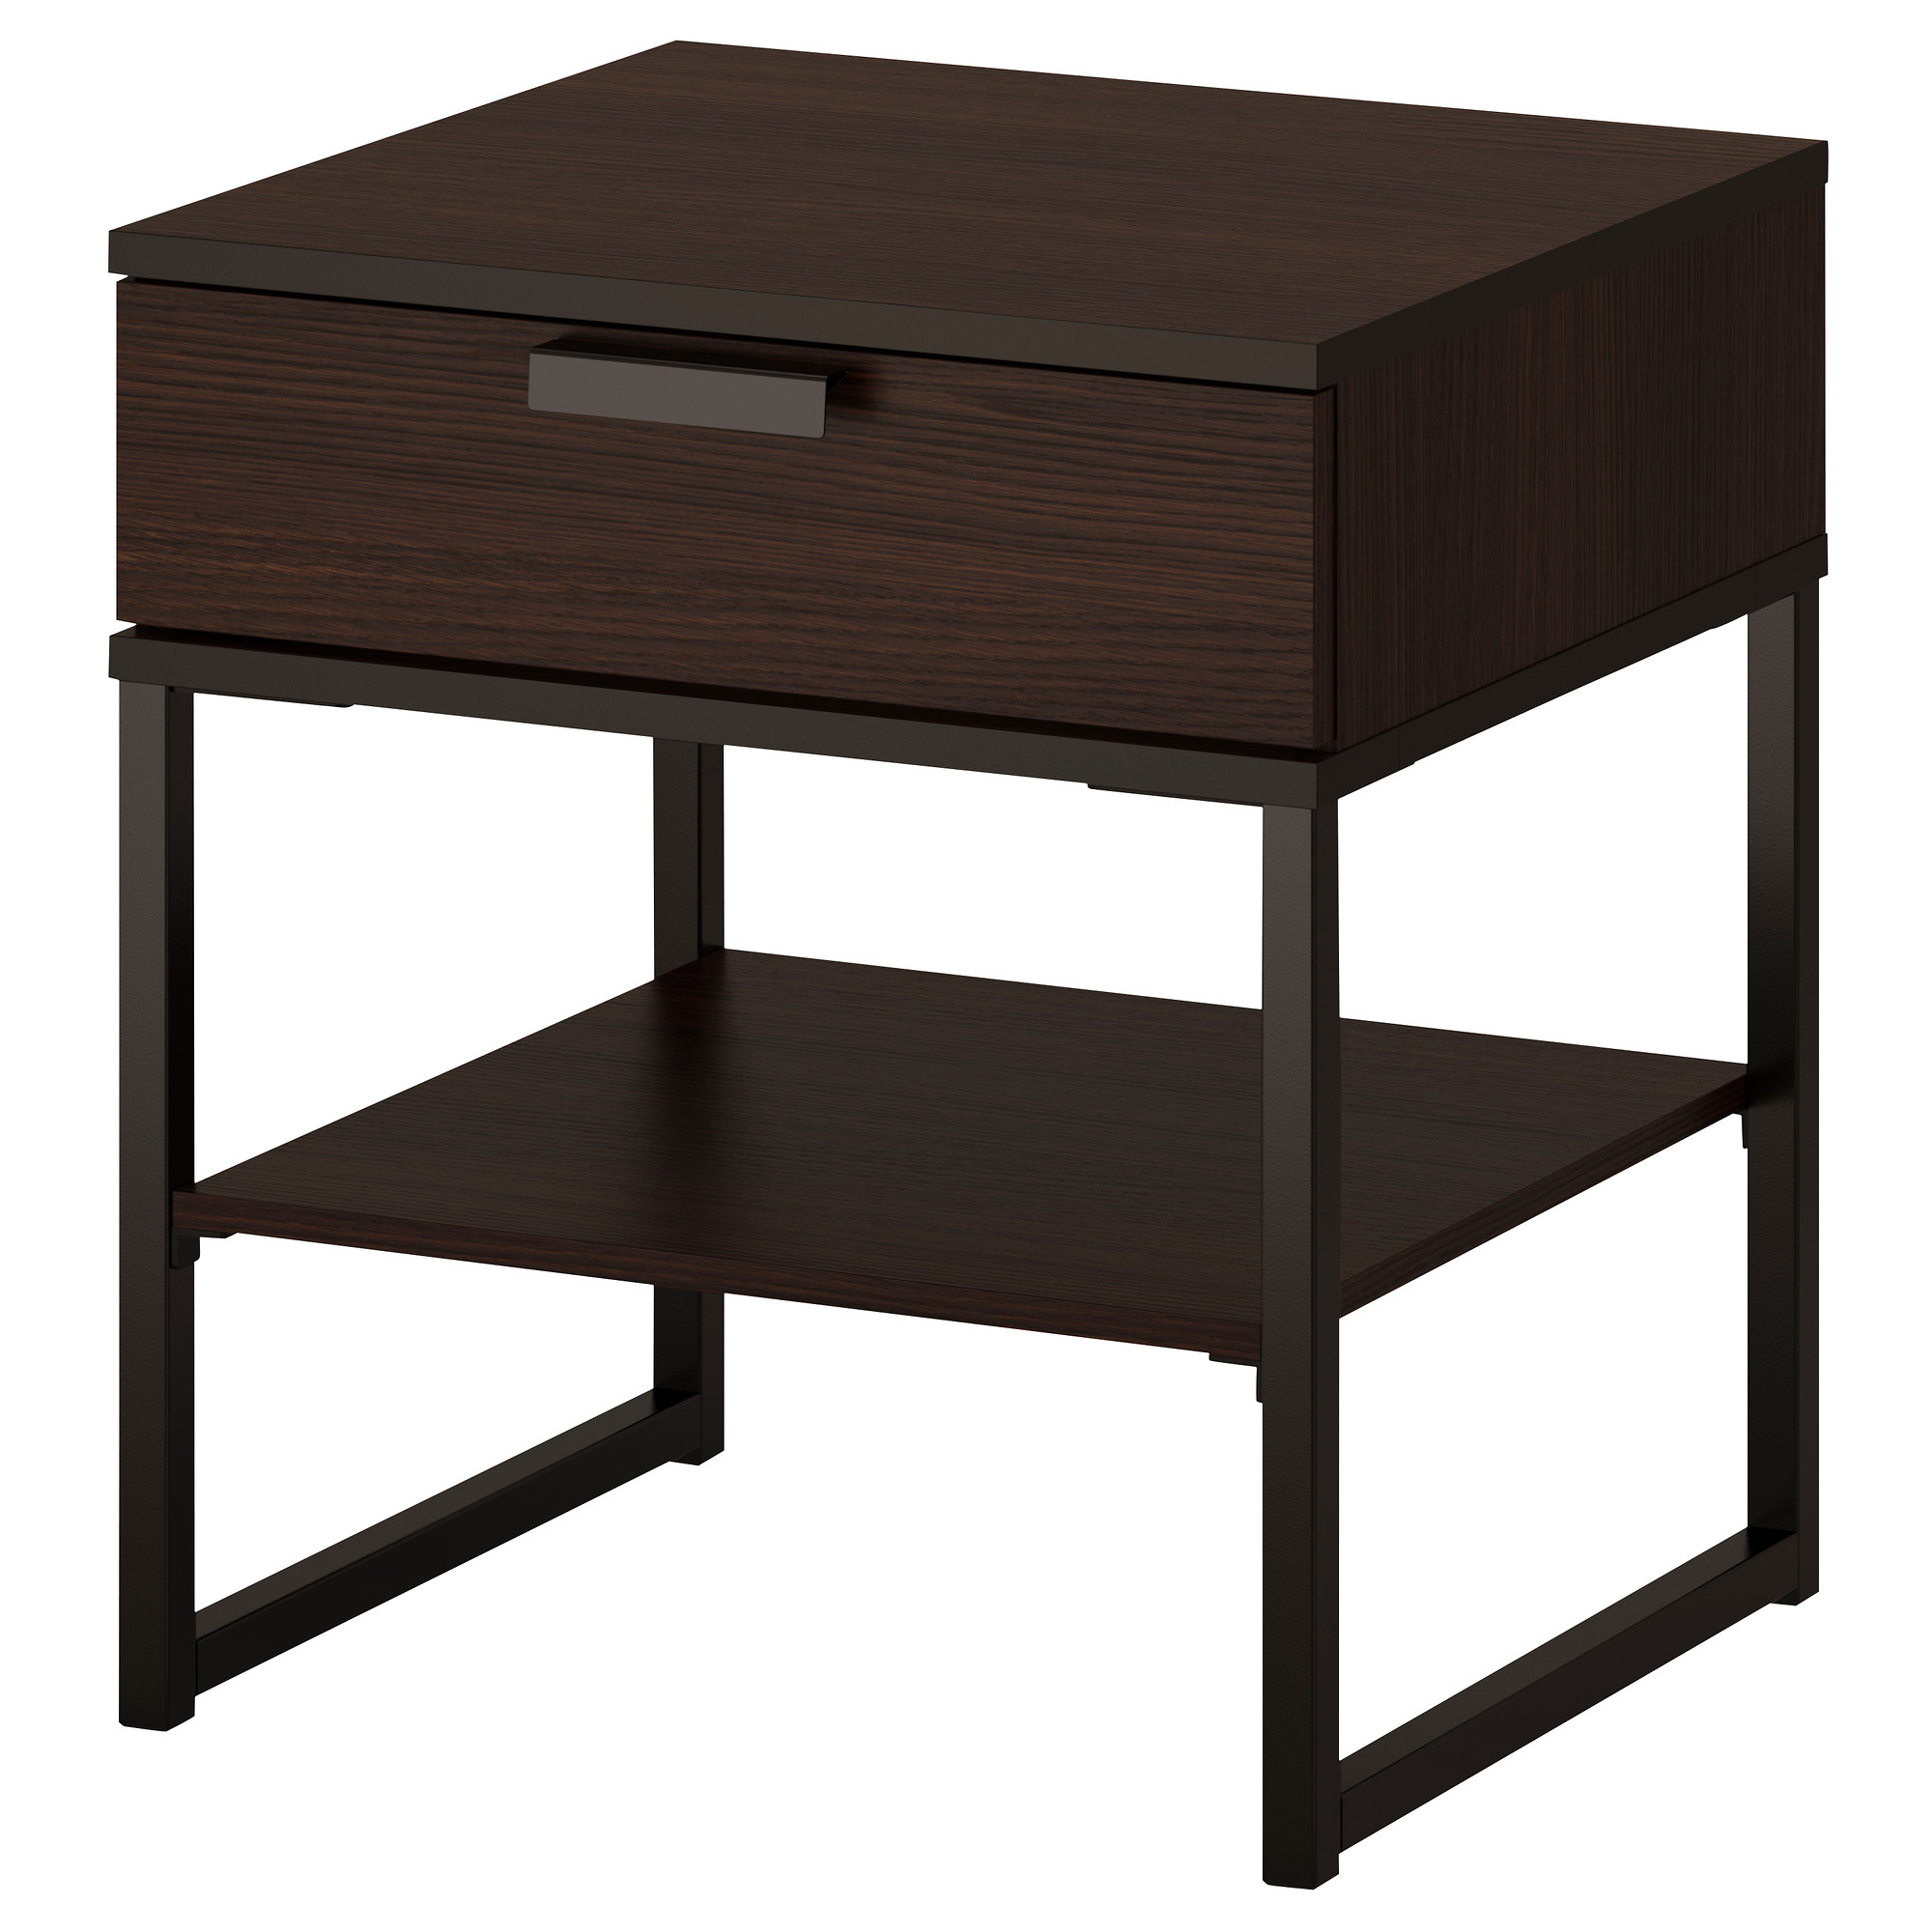 Tarva Nightstand | Tarva Nightstand | Narrow Bedside Table